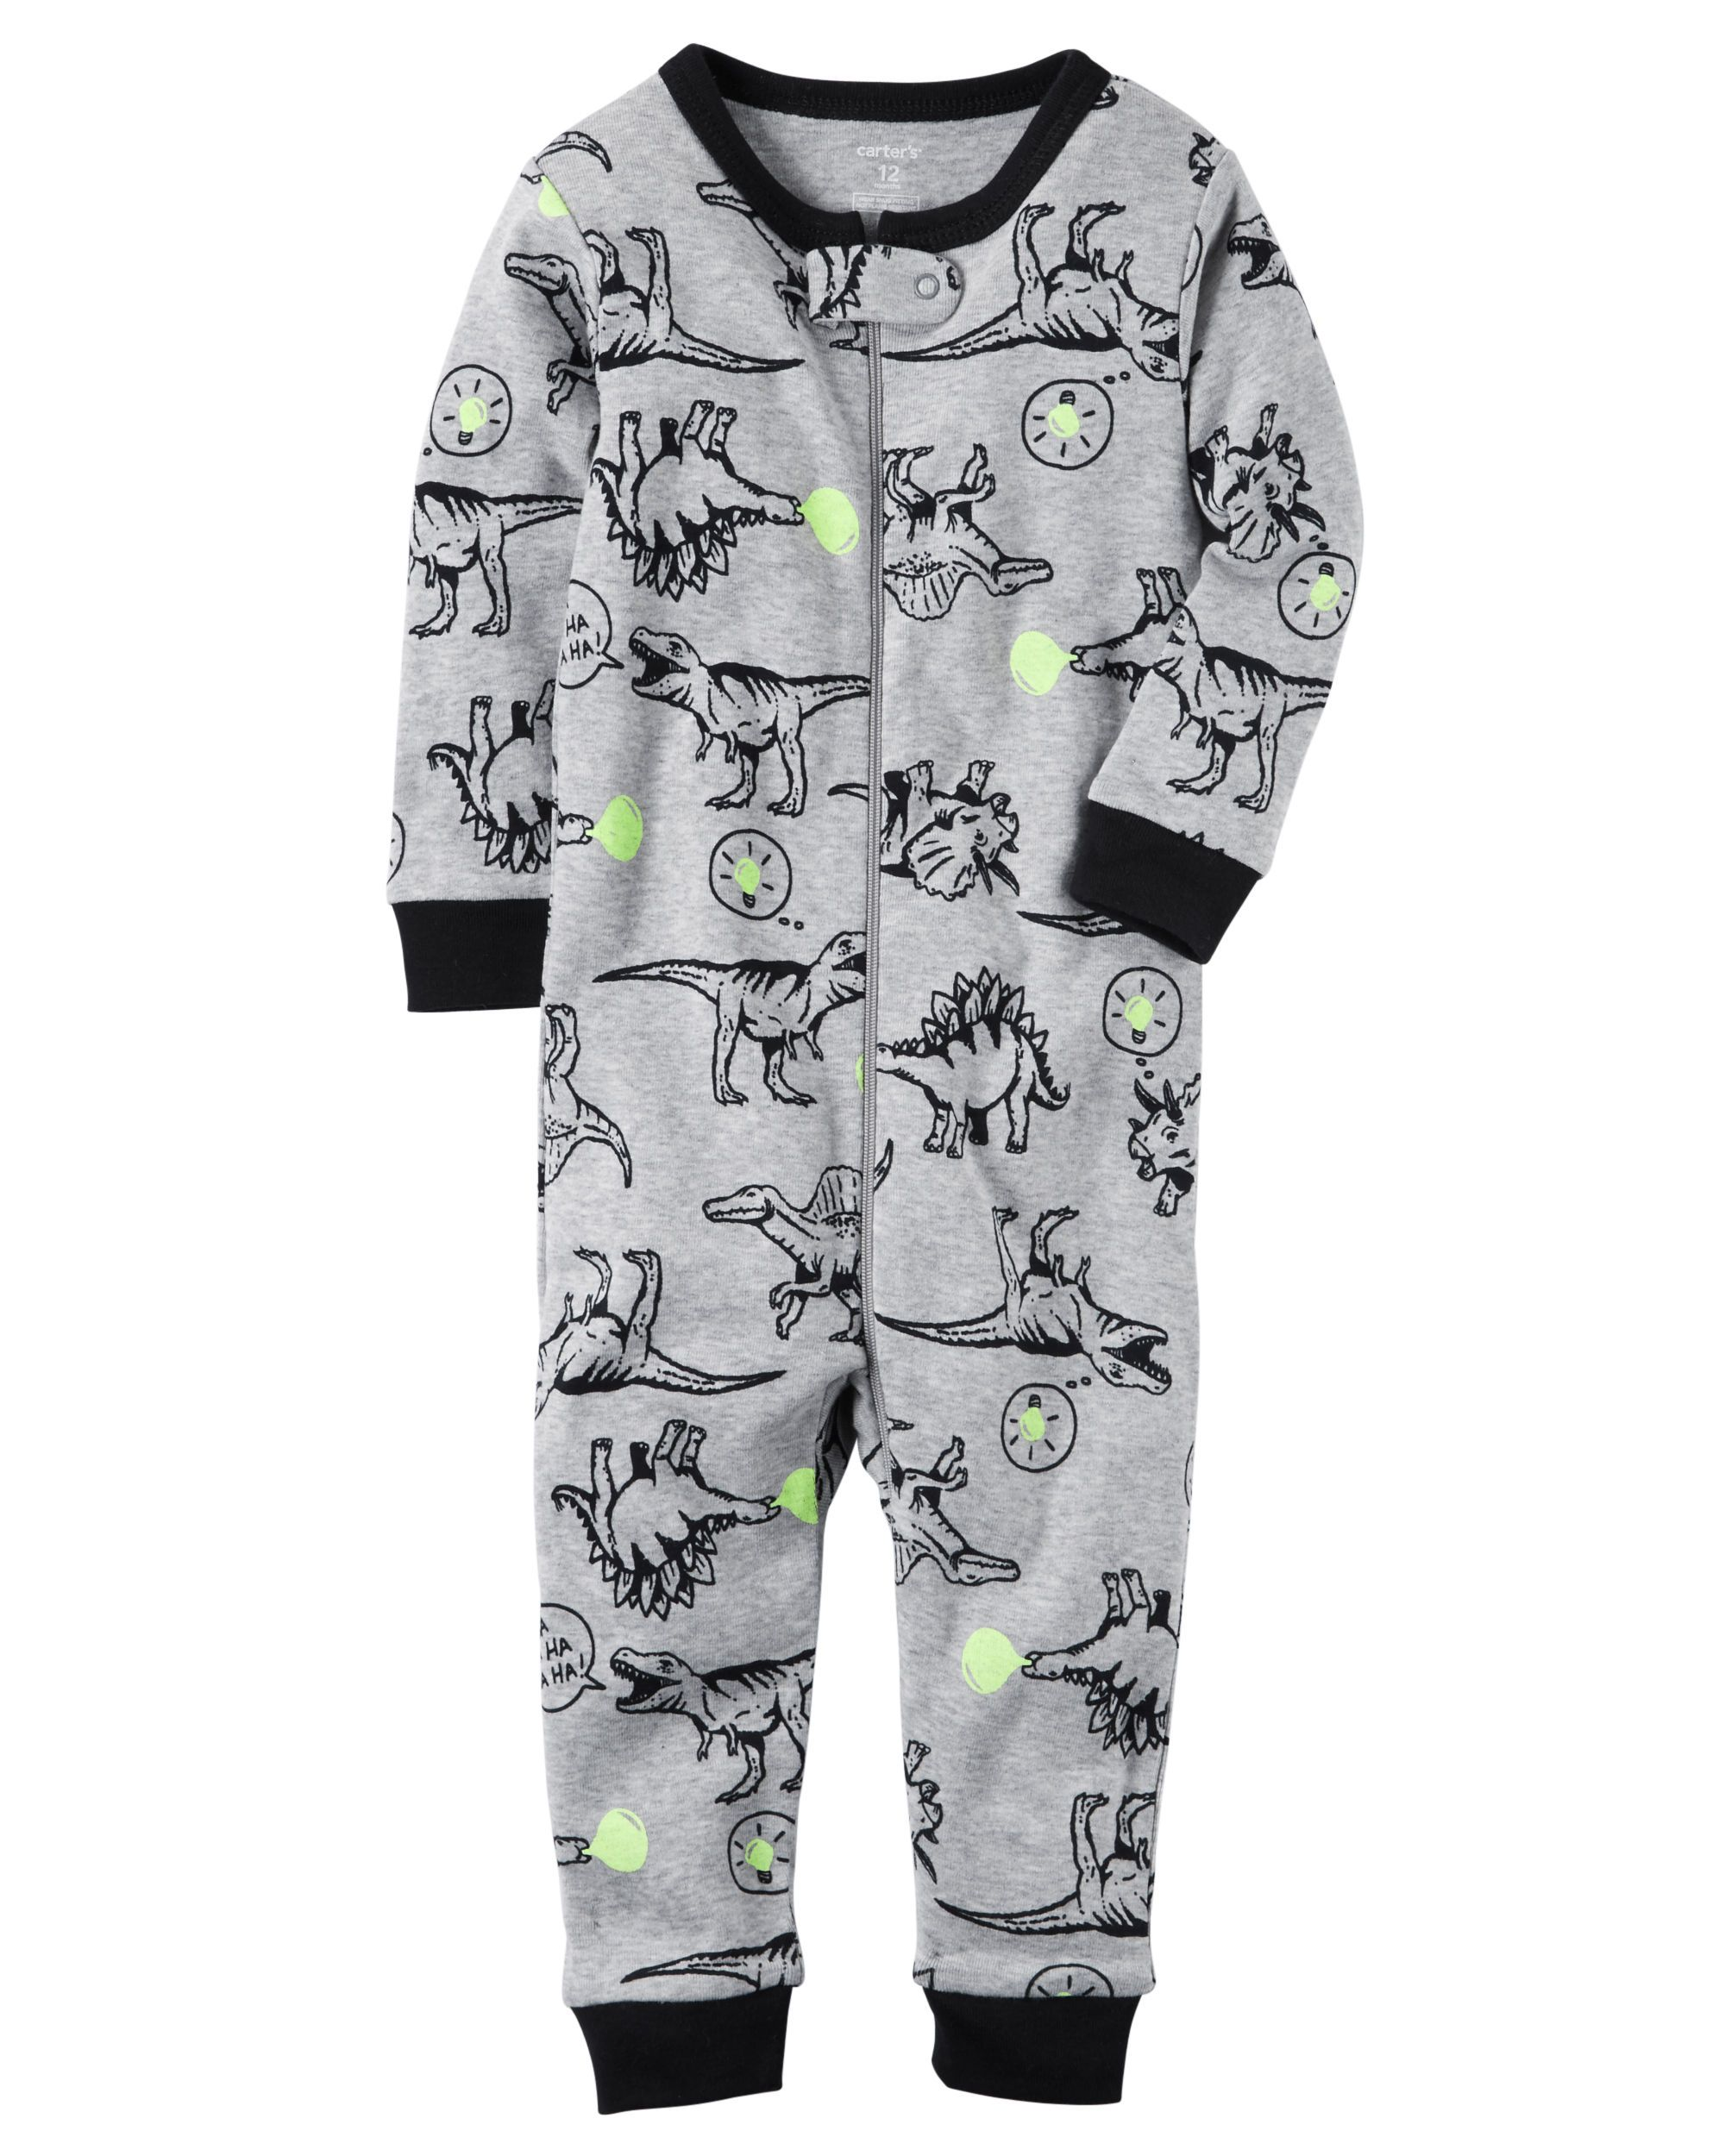 b243d892e3d1 1-Piece Snug Fit Cotton Footless PJs